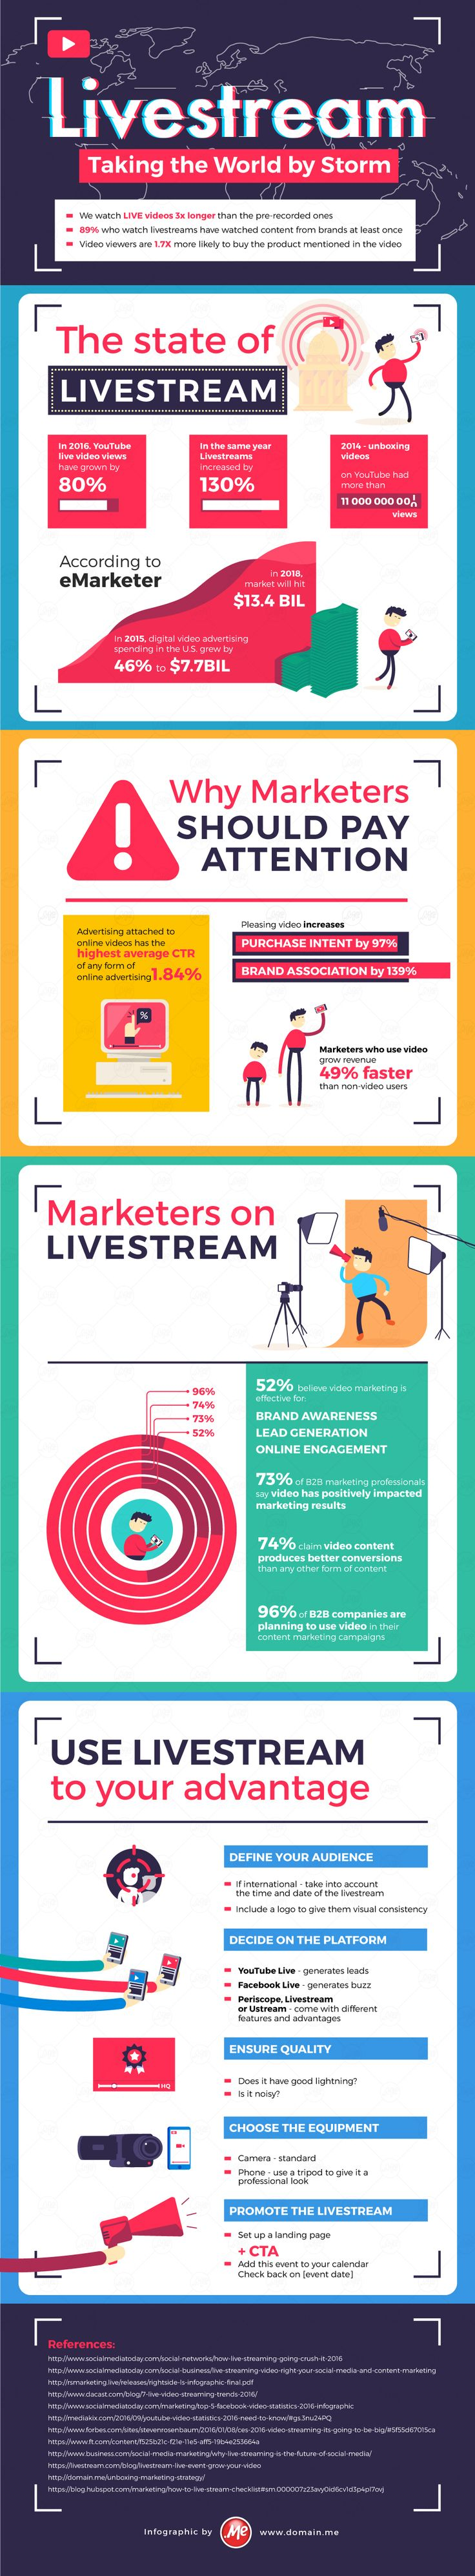 Live Streaming Video for Business: Stats & Tips for Your Strategy [Infographic] Discover the best Video Marketing Tools For Your Business and More at http://videomarketing.life/reviews/